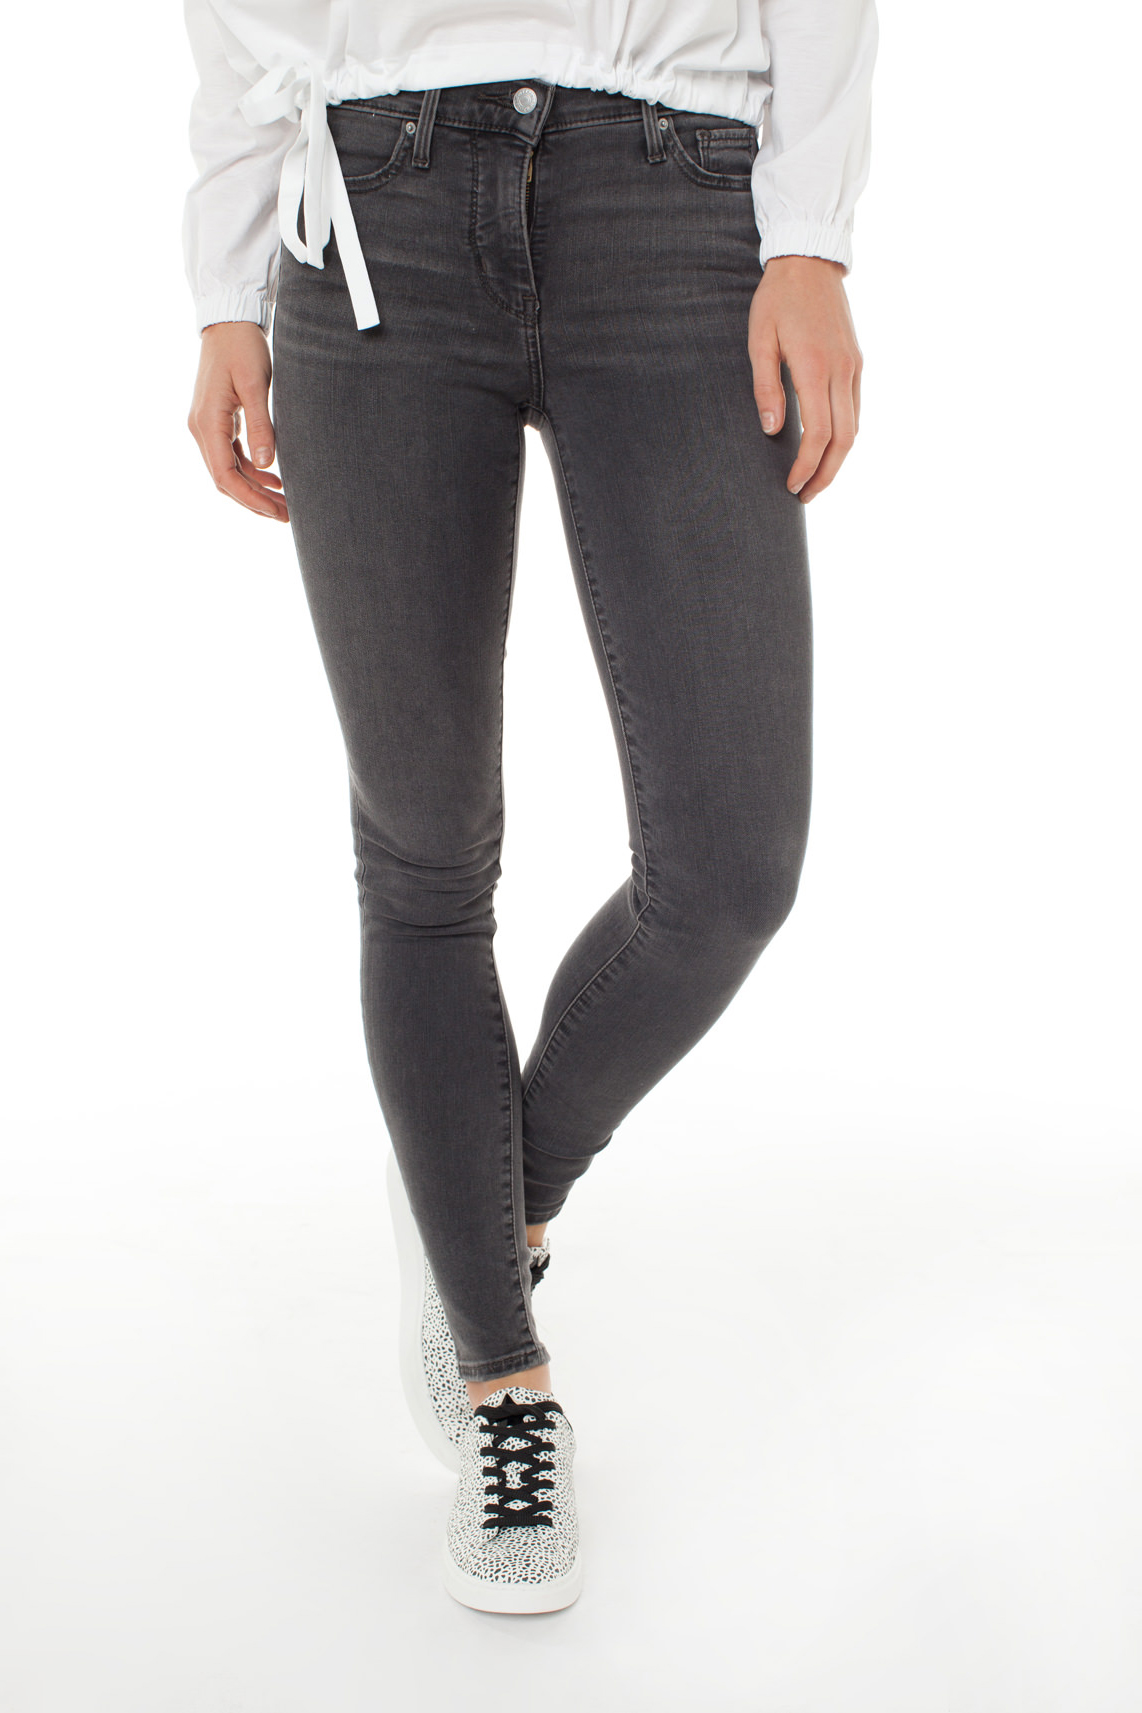 Levi s Dames 310 Shaping skinny jeans L32 Grijs